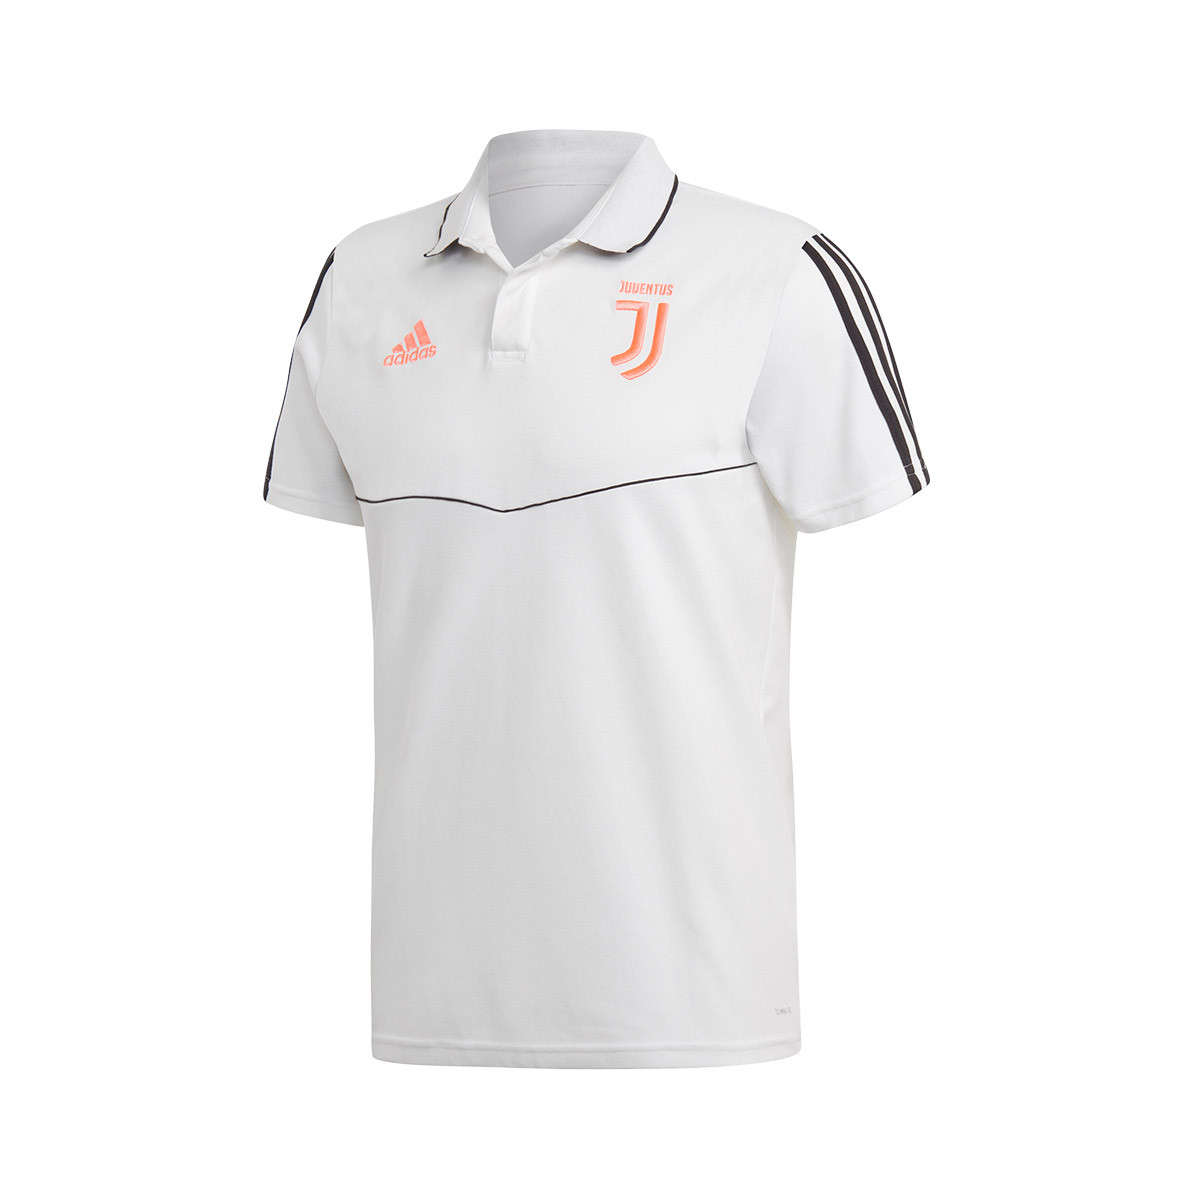 Juventus Black 2019 White Polo 2020 vmnN08wO